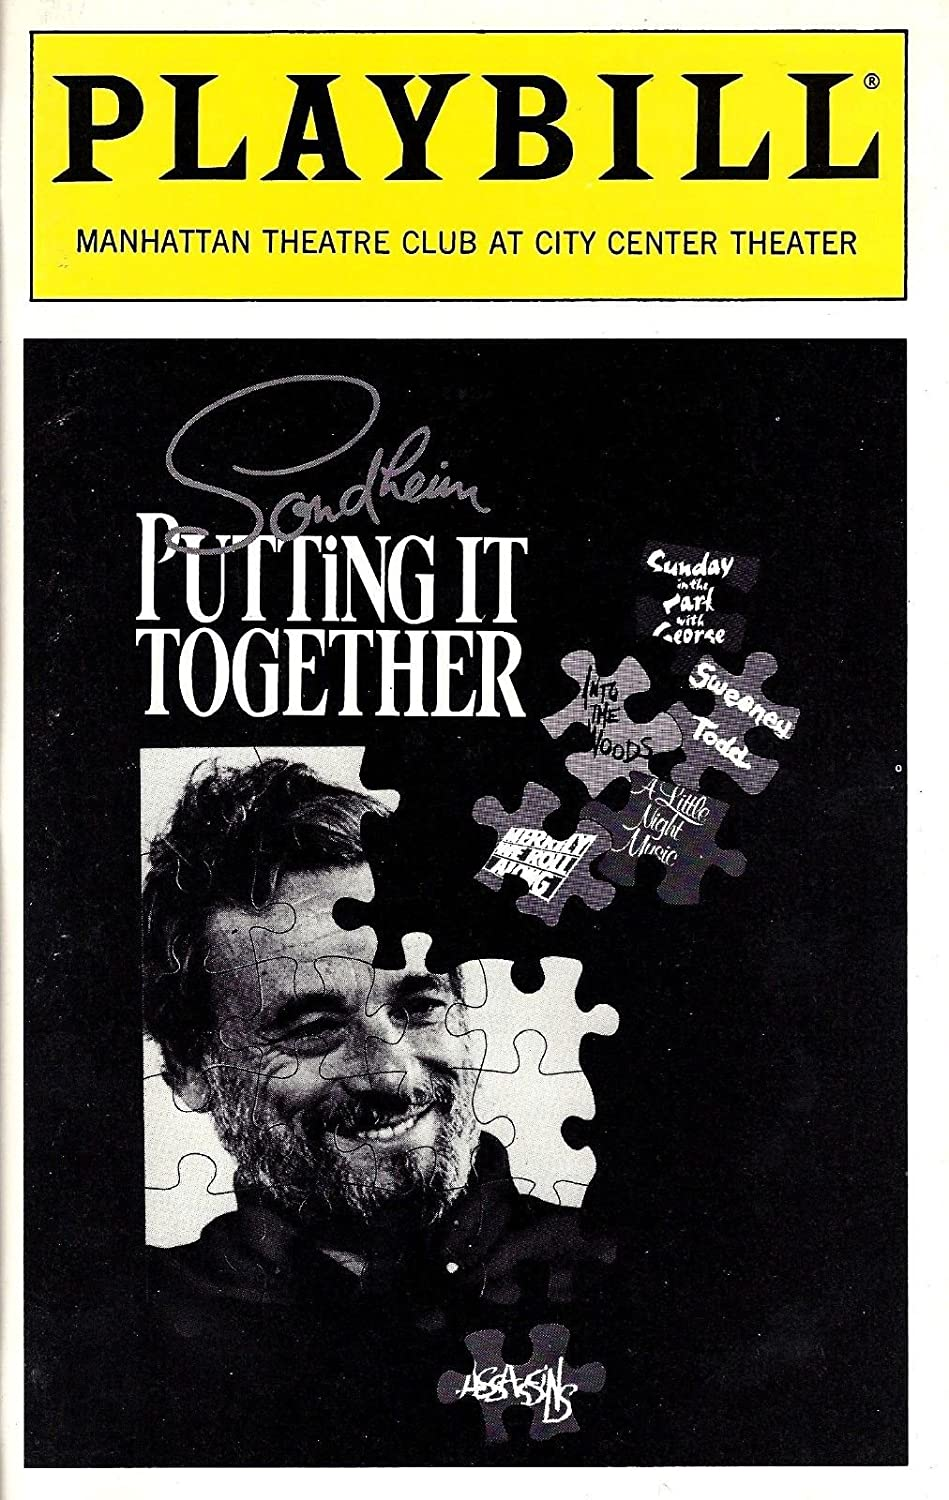 Stephen Sondheim 'PUTTING IT TOGETHER' Julie Andrews / Rachel York 1993 Playbill